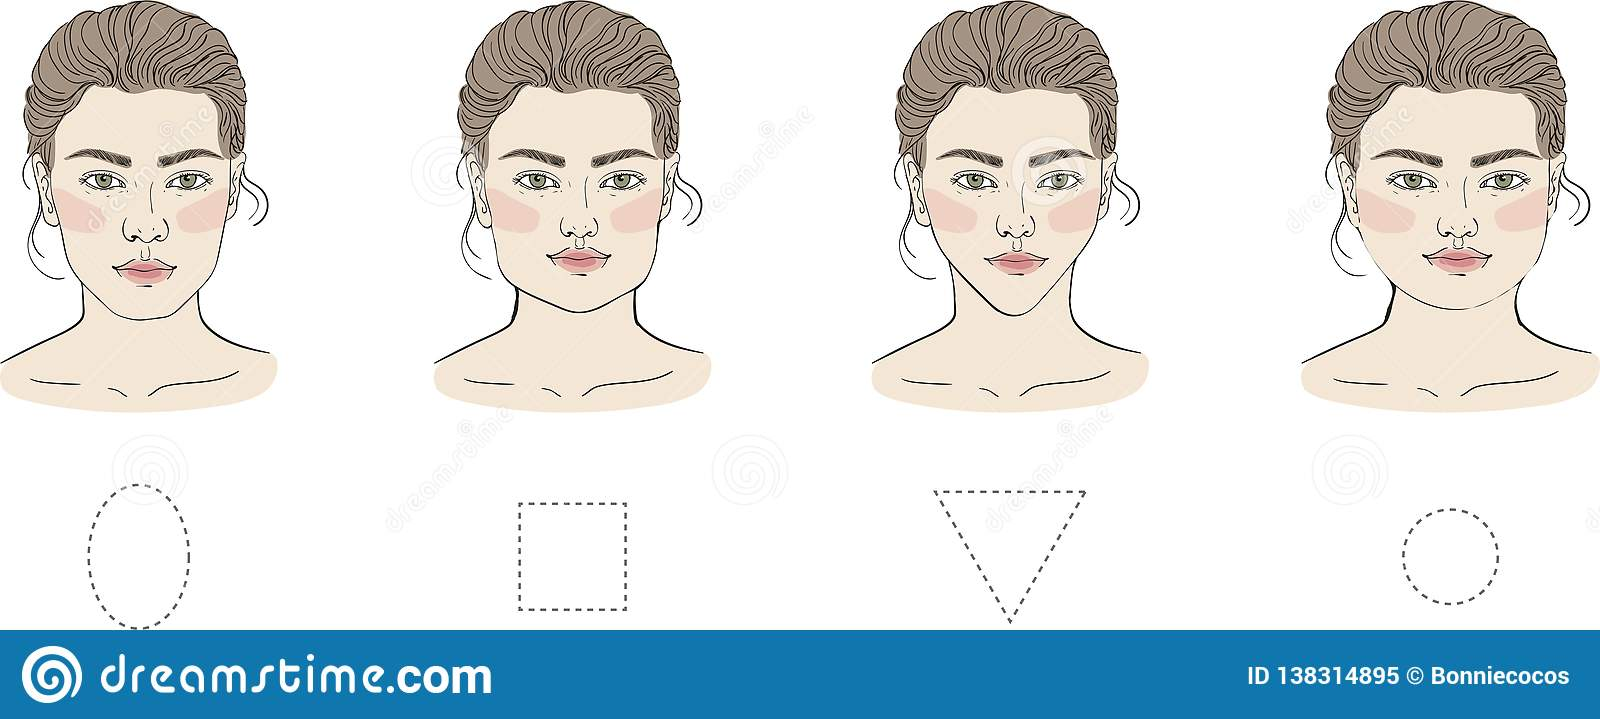 84d36723039 Round Long Square Face Stock Illustrations – 45 Round Long Square Face Stock  Illustrations